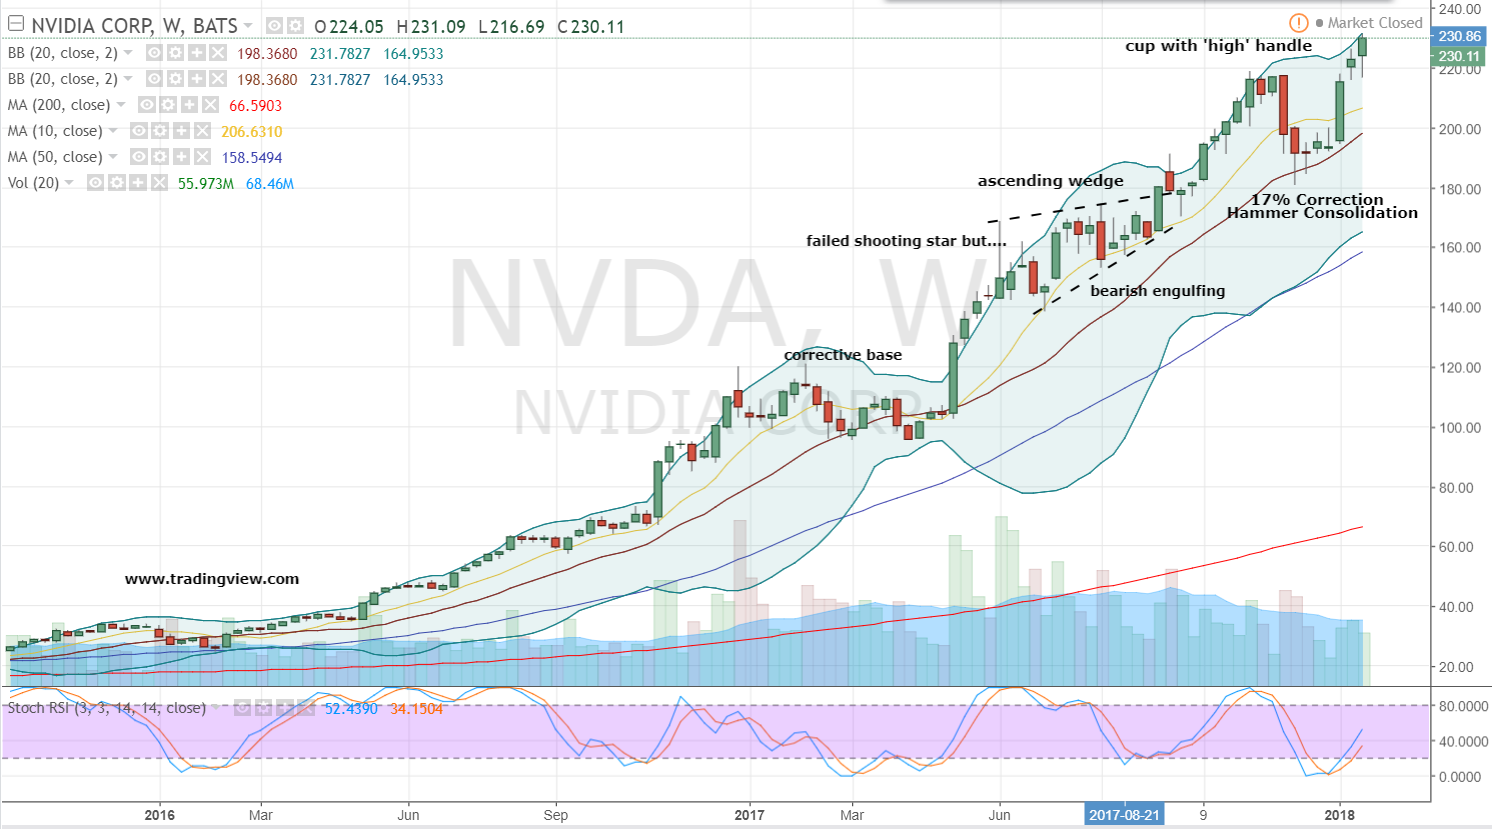 What Are Analysts Report About NVIDIA Corporation (NVDA)